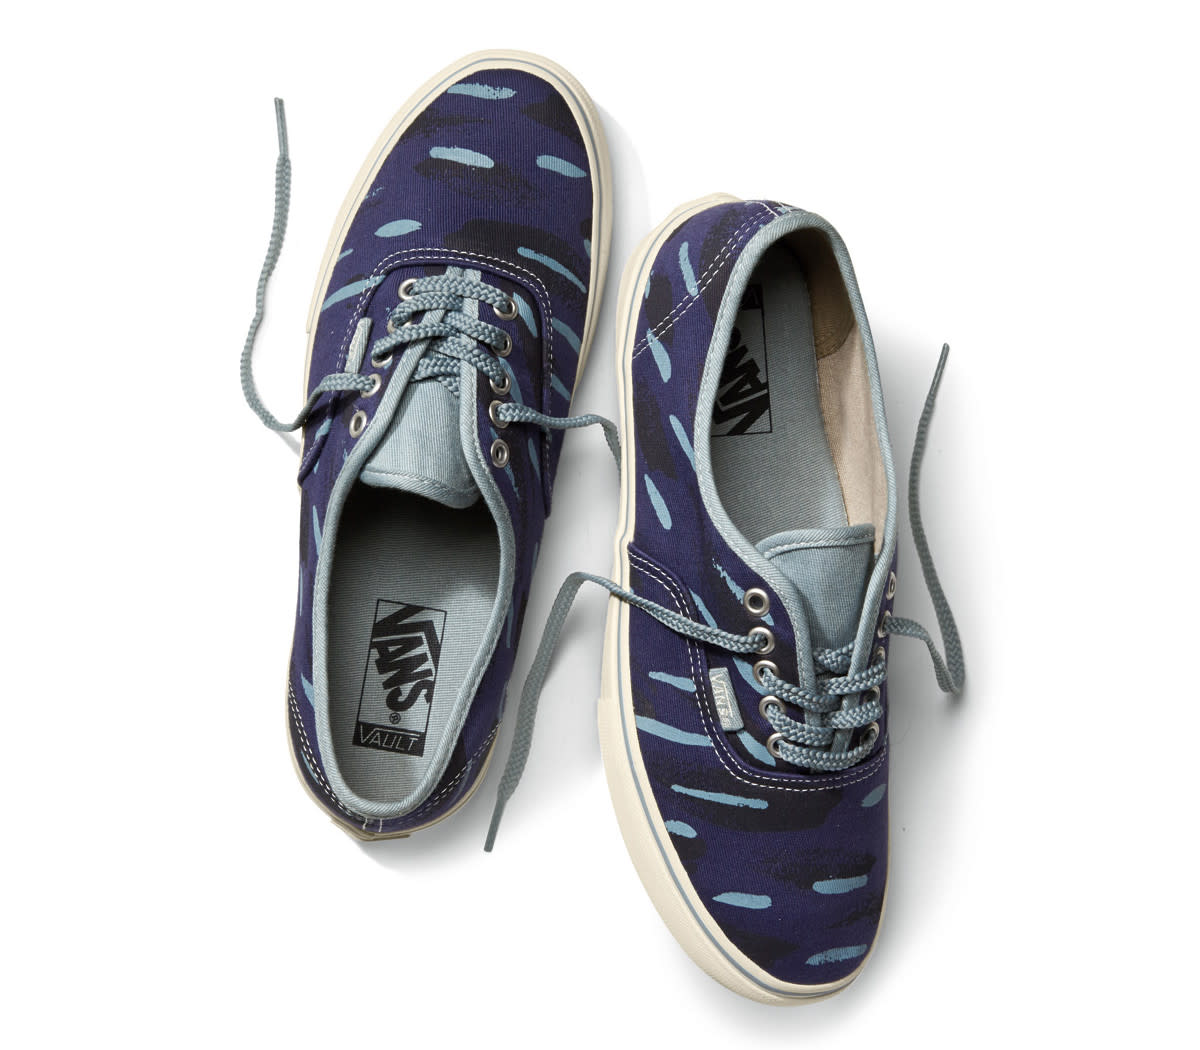 twothirds-vault-by-vans-collection-04